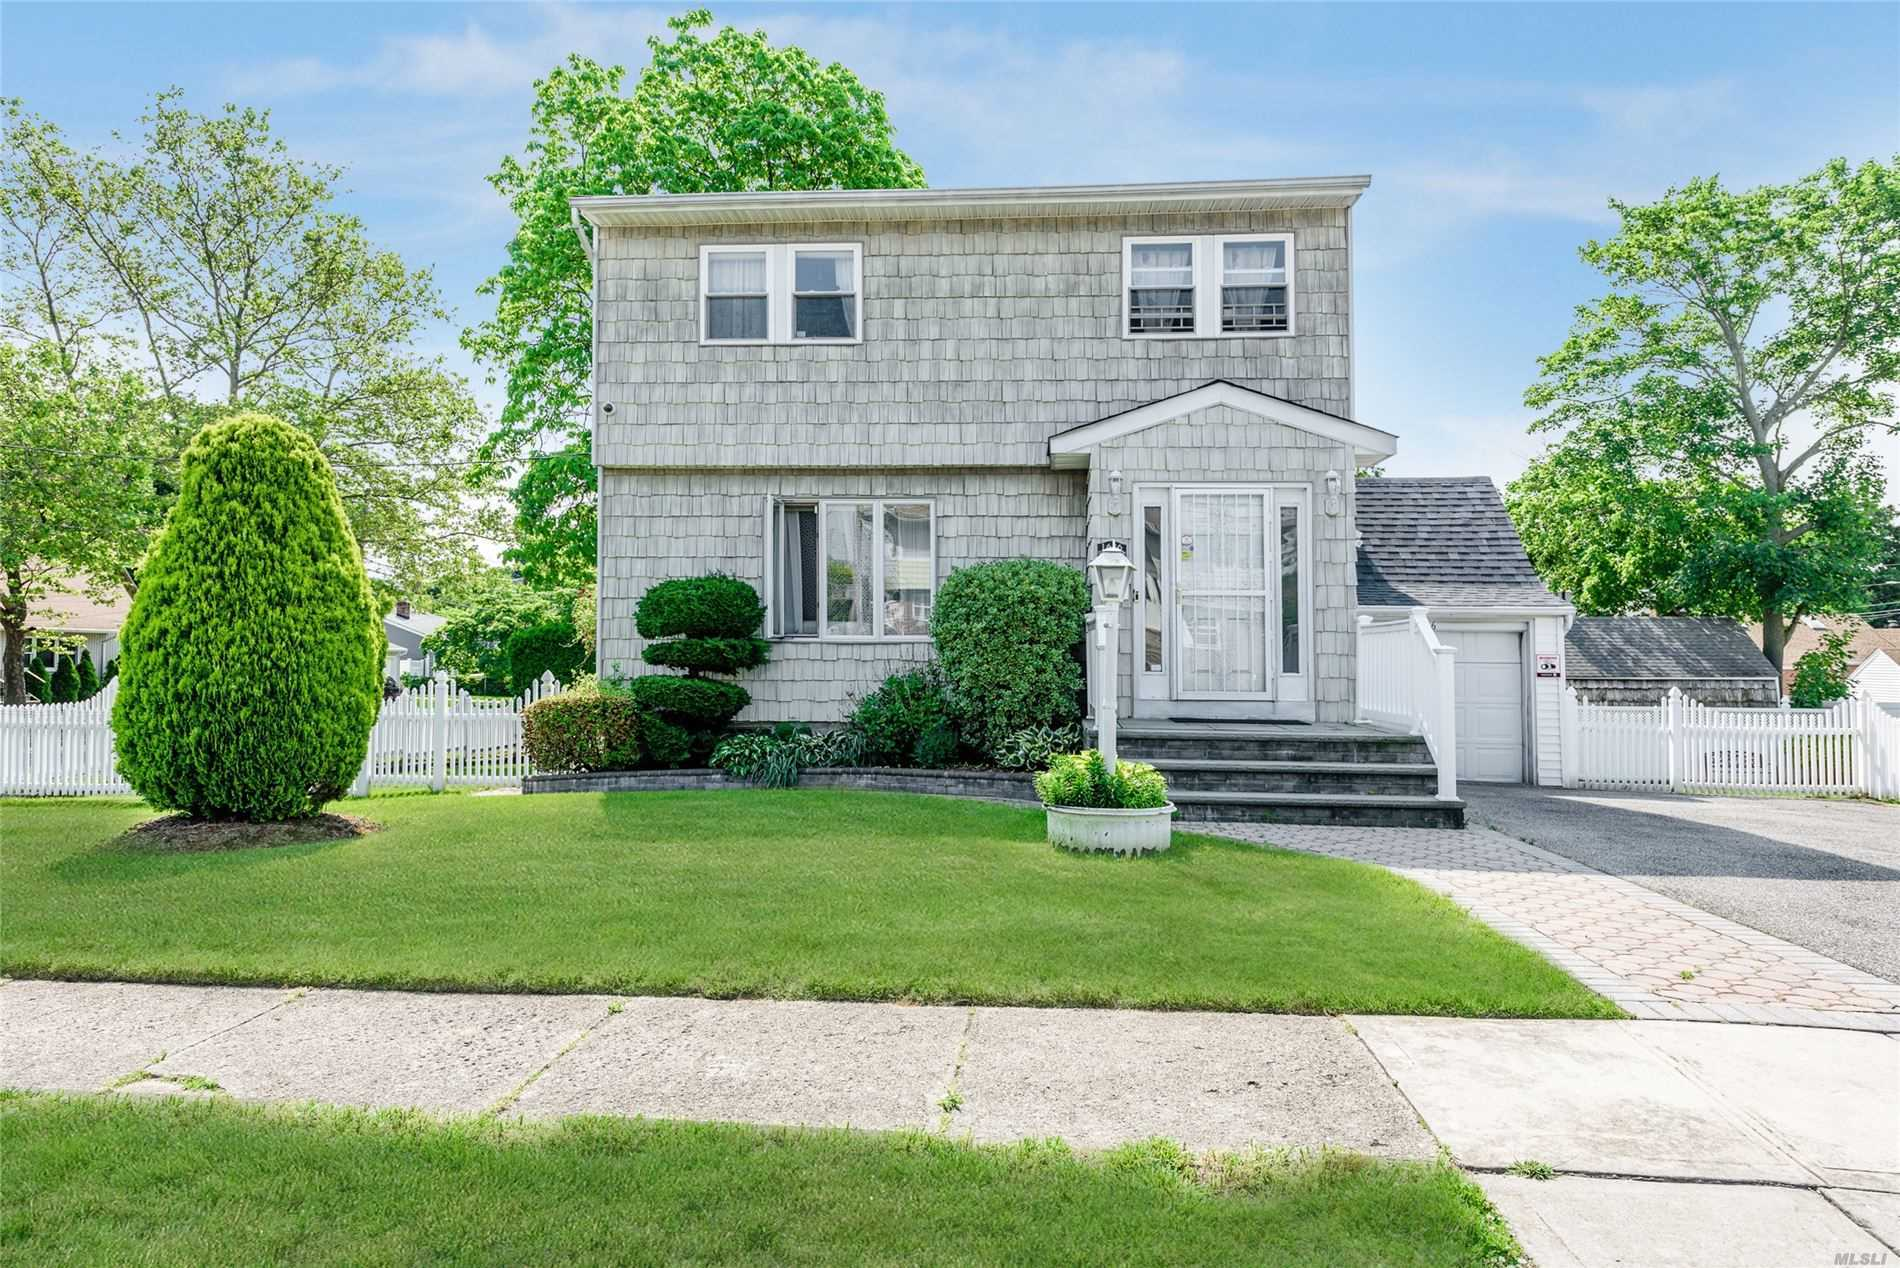 1636 Dale Ave - East Meadow, New York